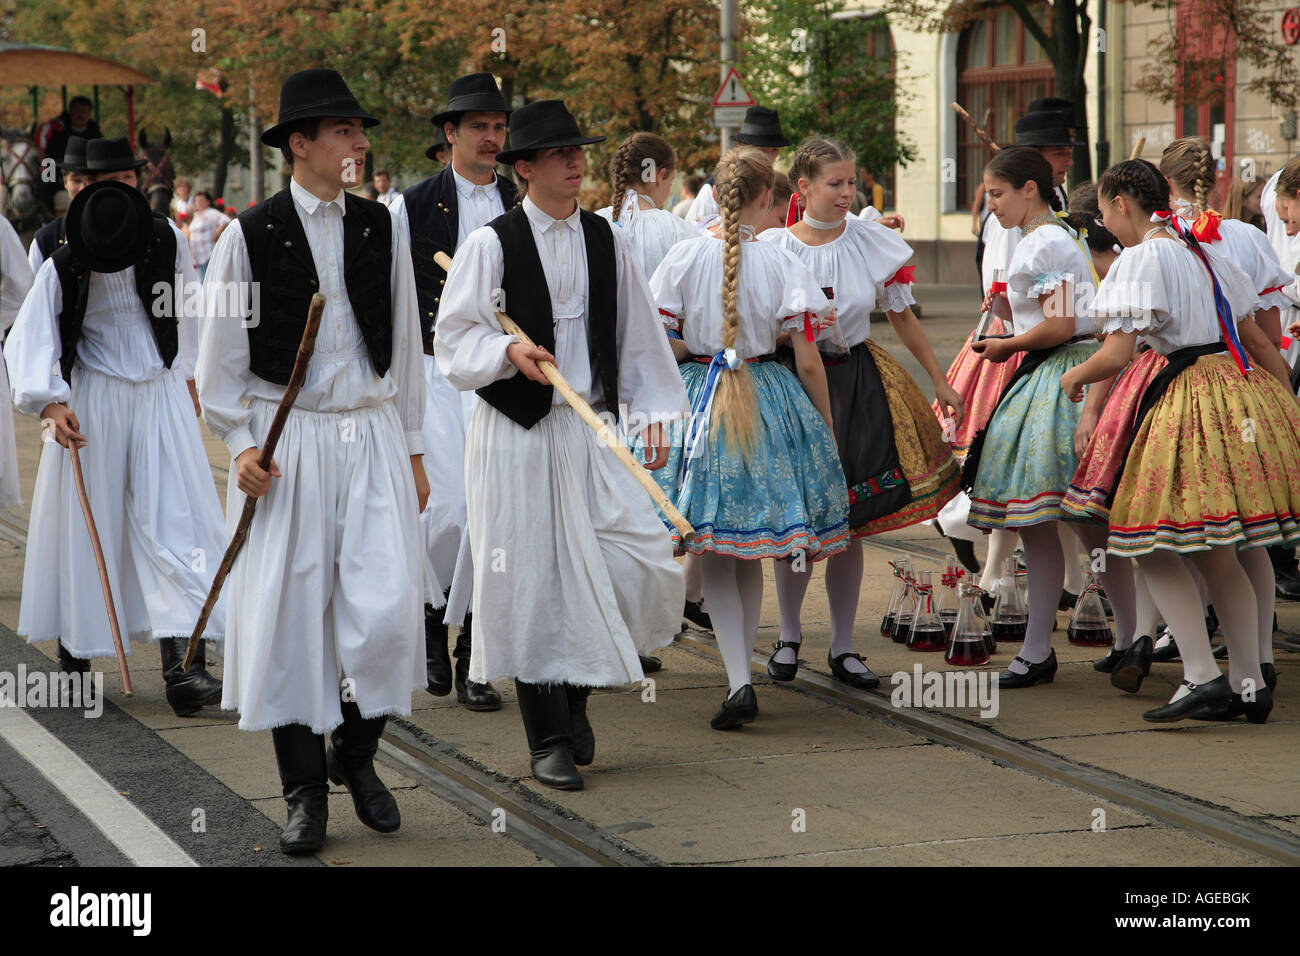 ungarn debrecen blumen karneval festival folklore menschen stockfoto bild 14184882 alamy. Black Bedroom Furniture Sets. Home Design Ideas